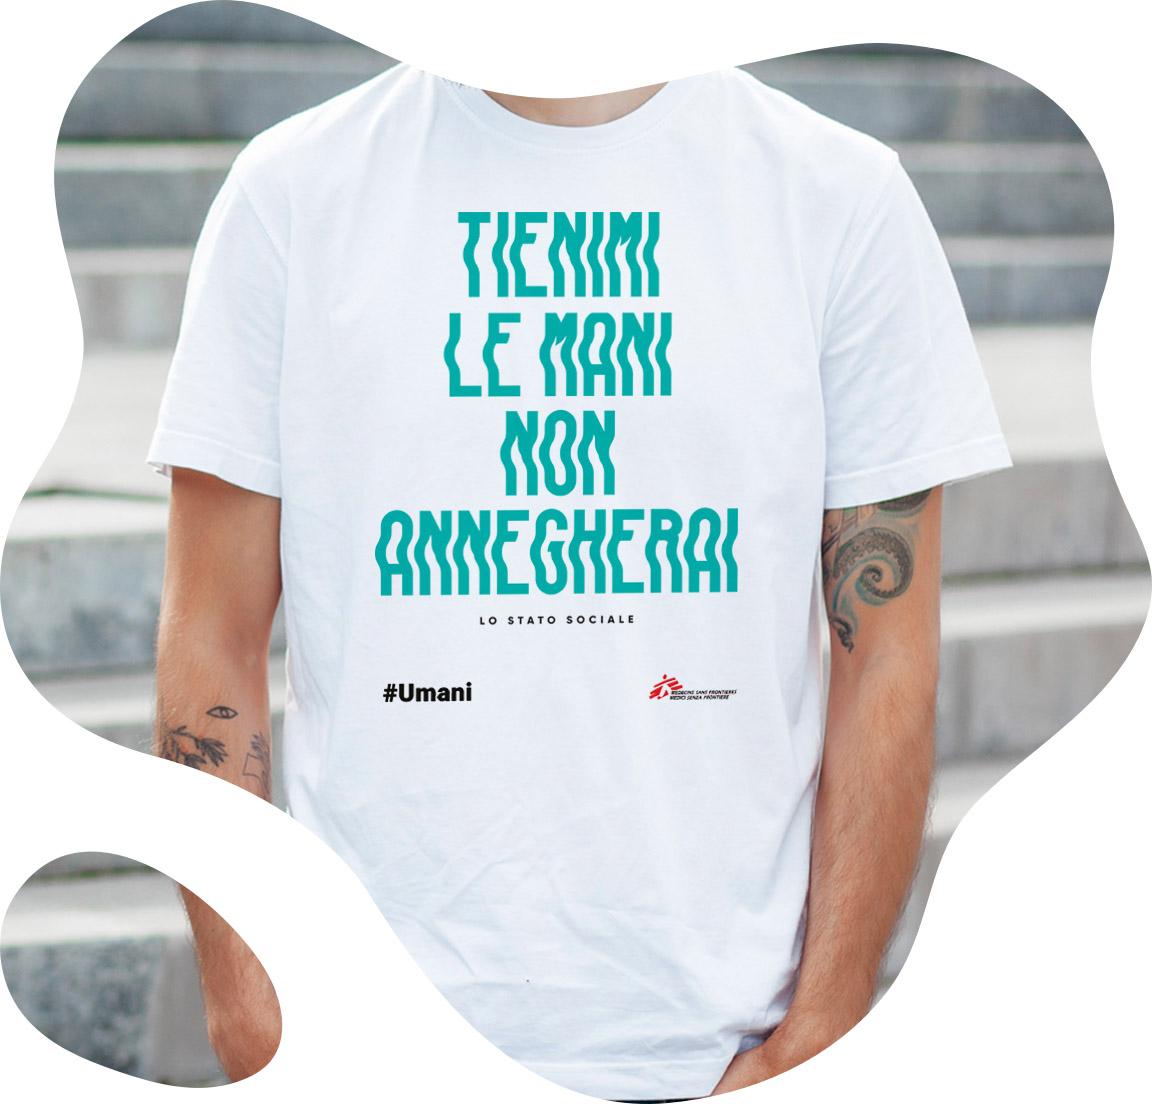 lo stato sociale's quote t-shirt for doctors without borders' campaign